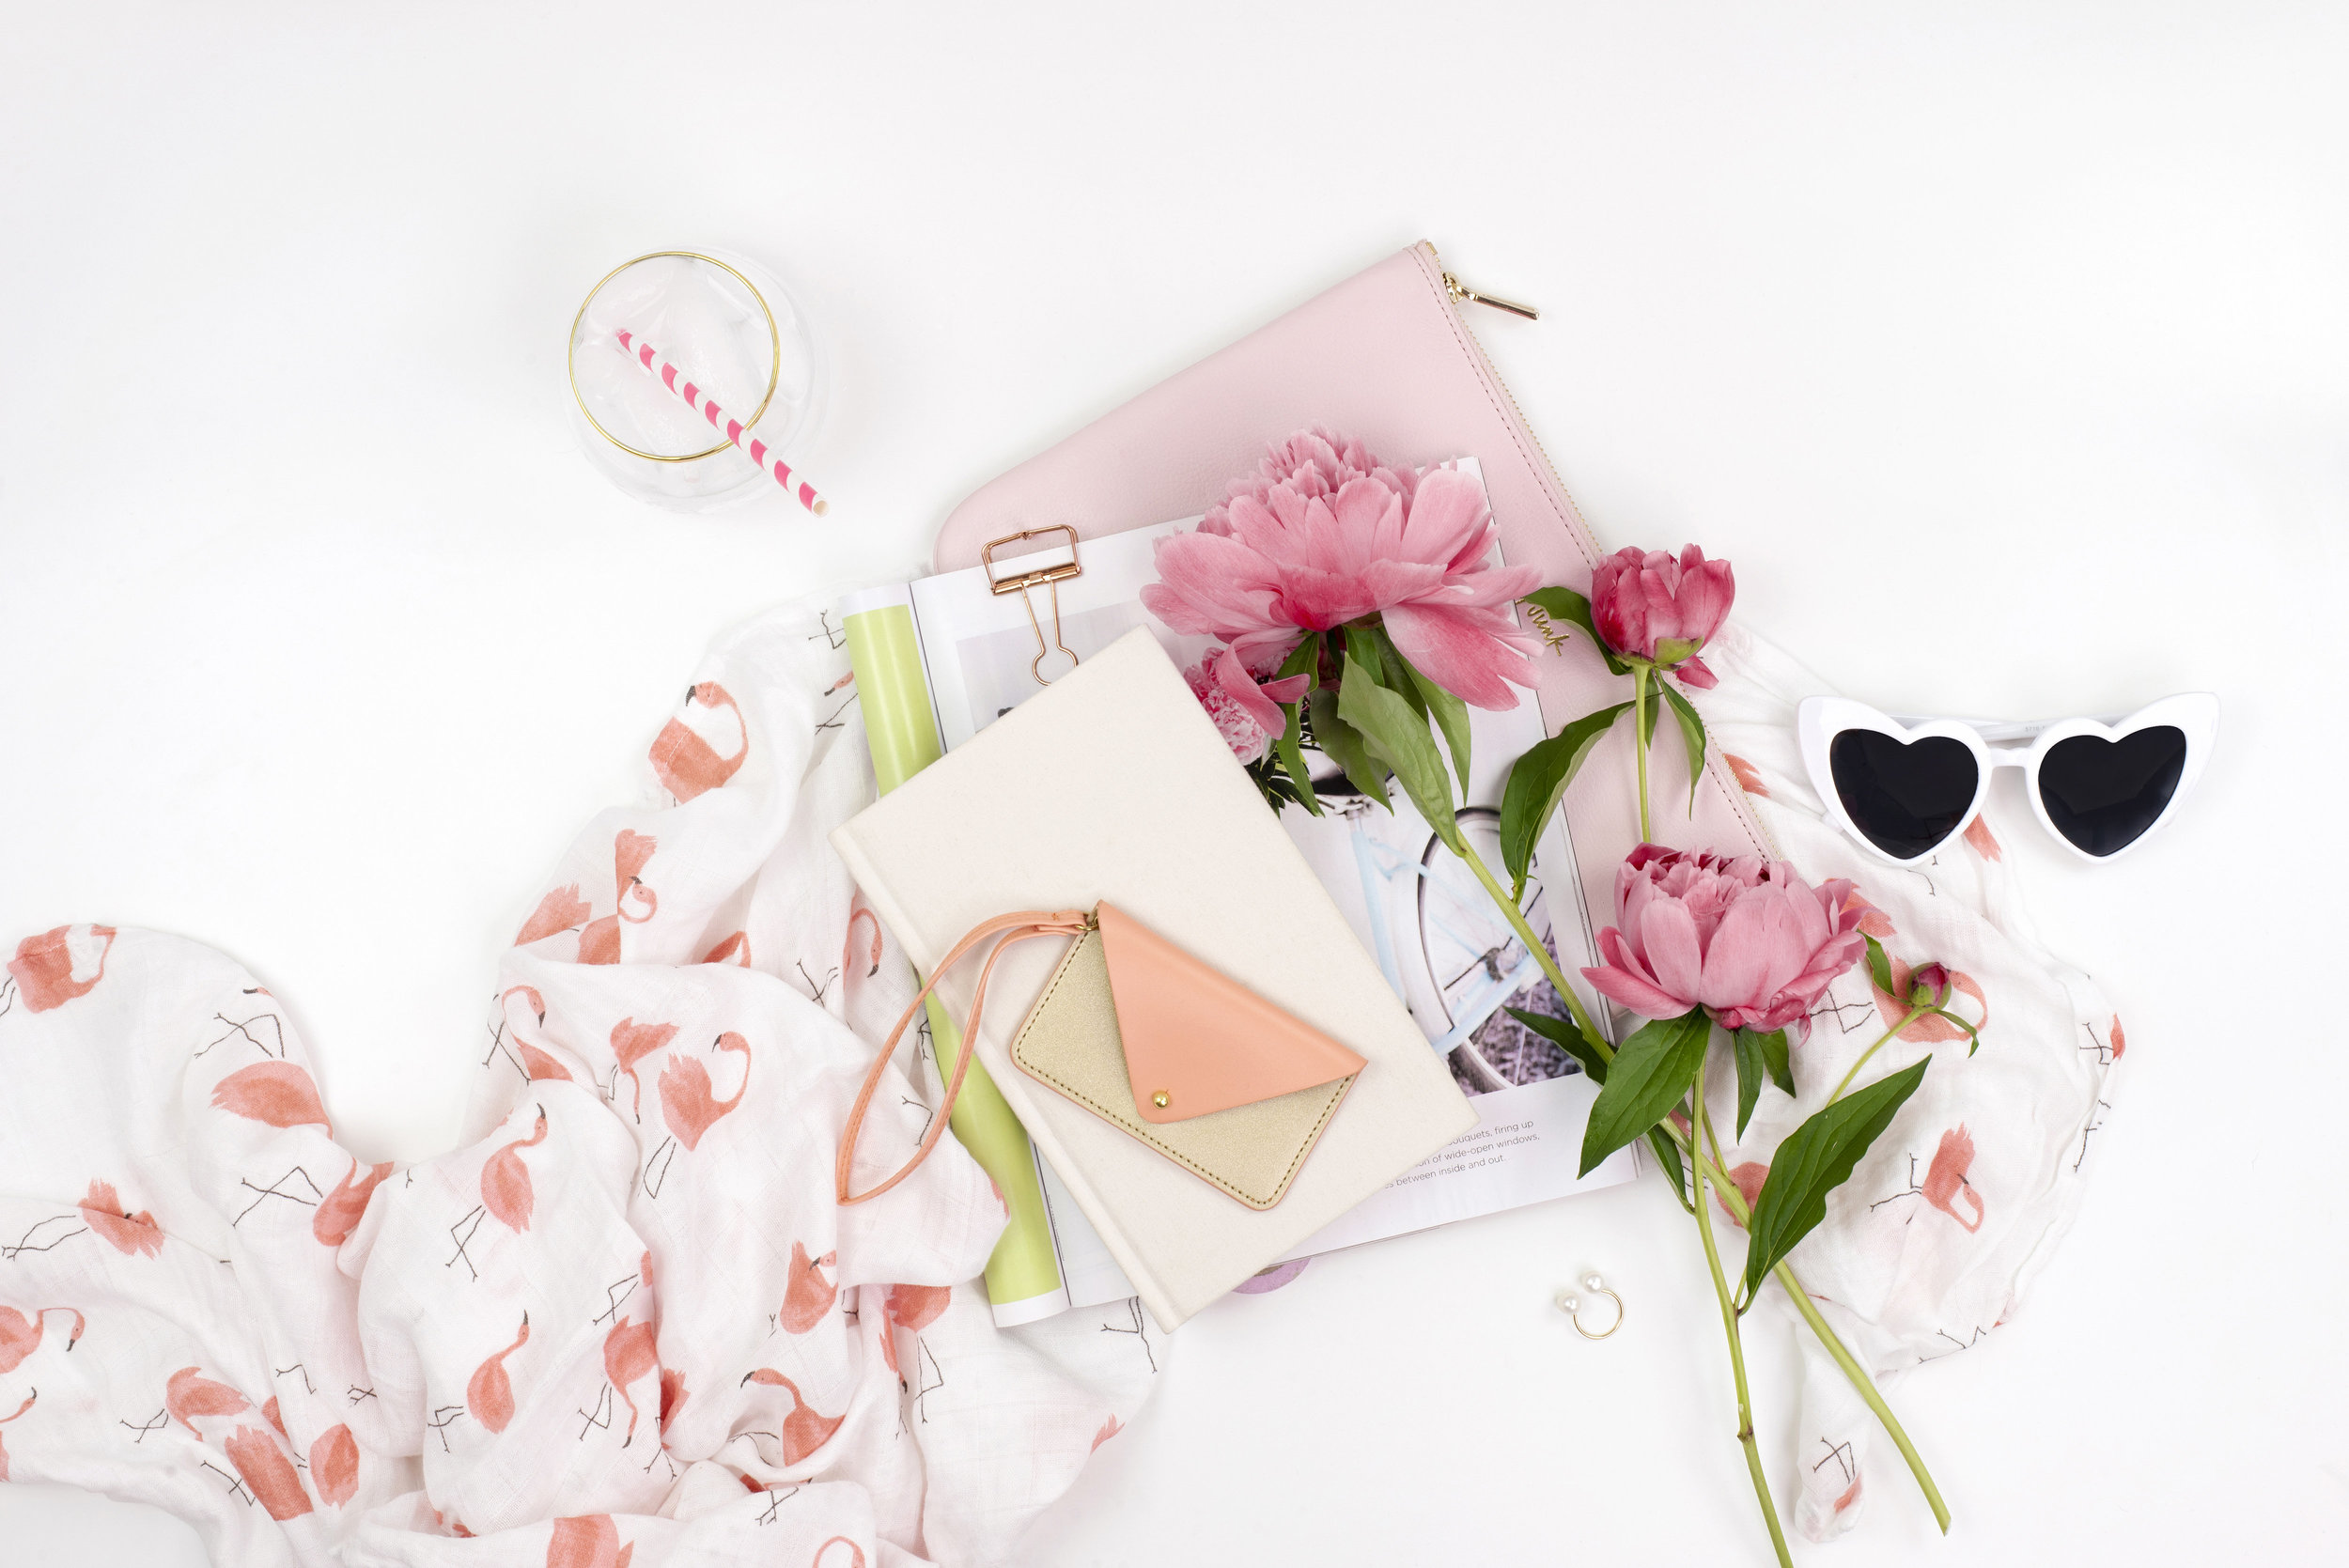 Her Creative Studio has really cute and fun styled stock photos!